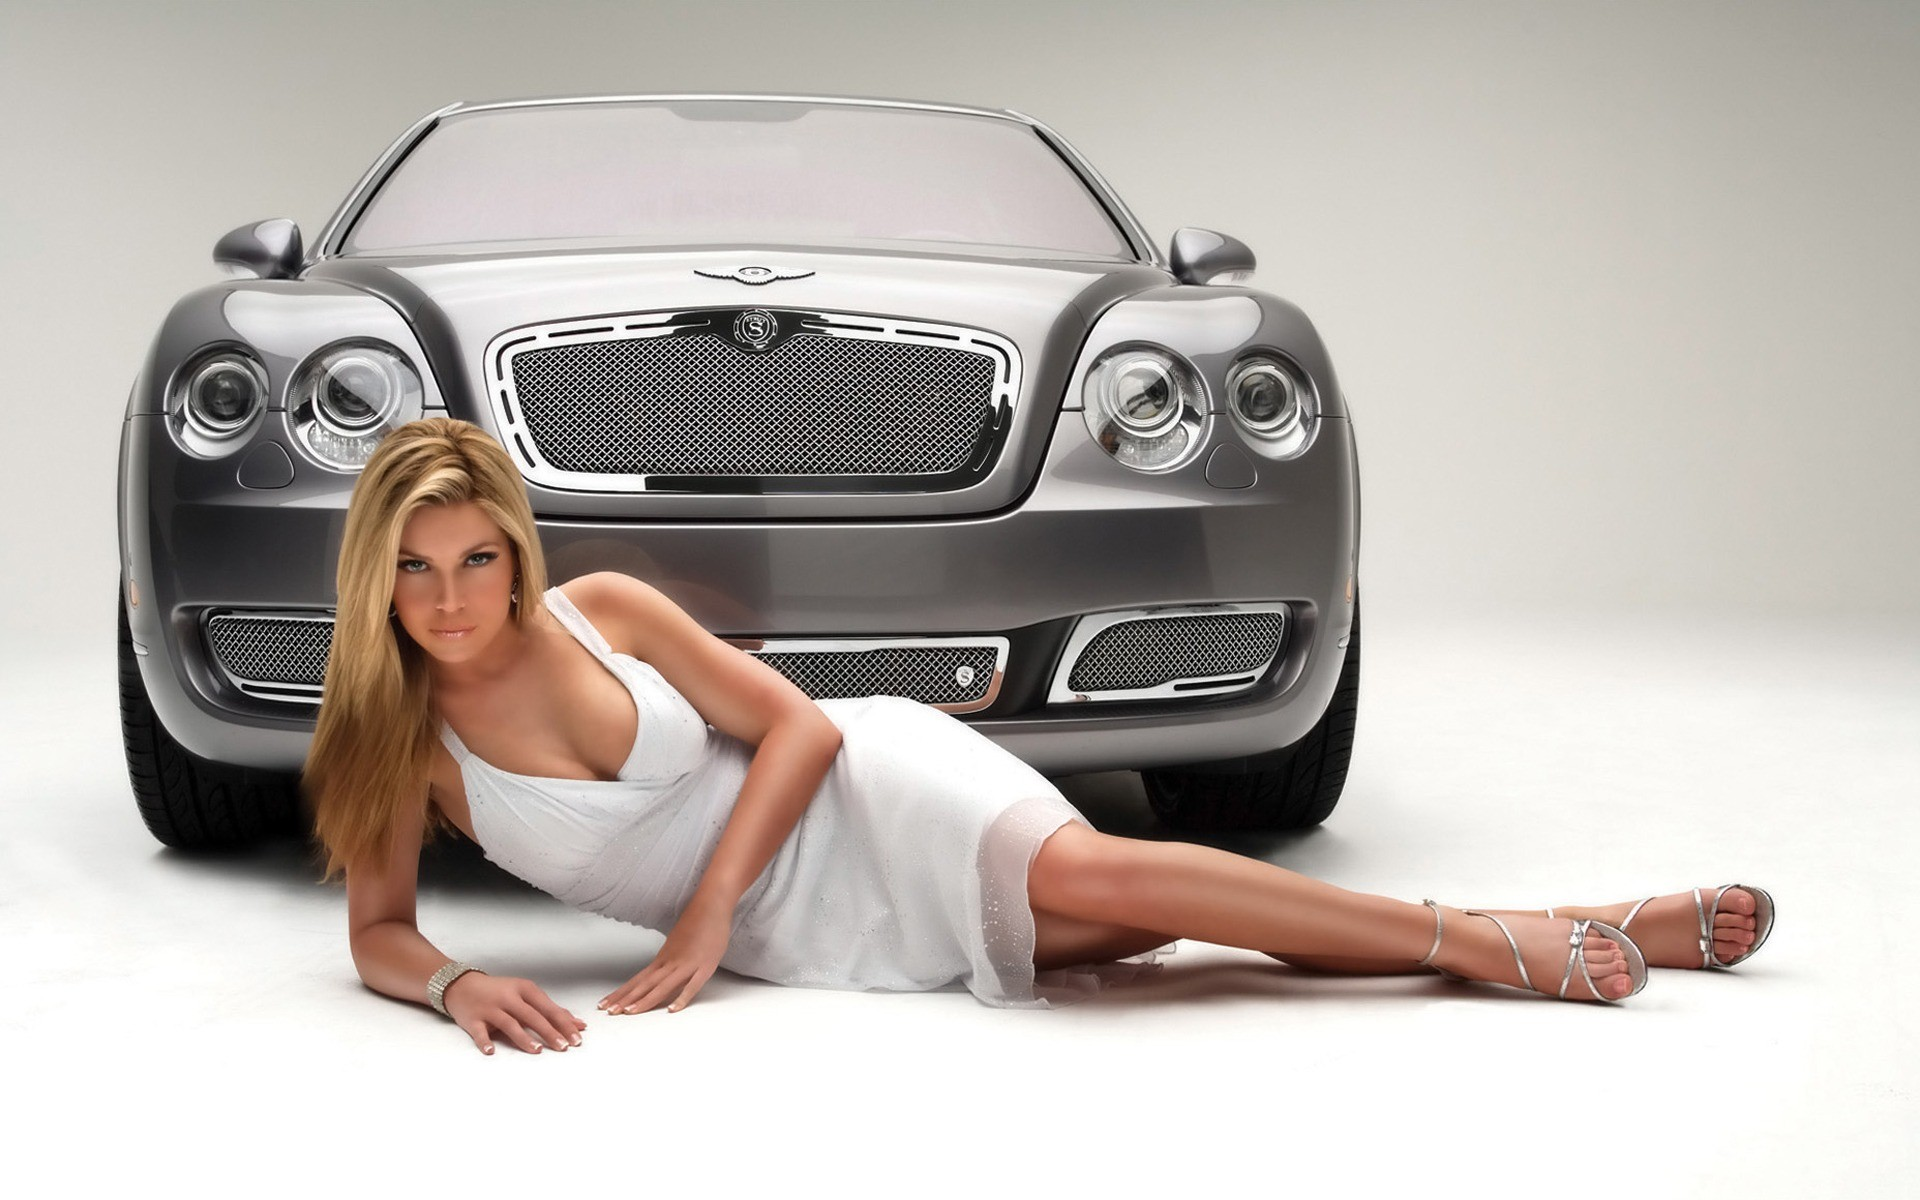 Car Image Wallpaper With Girl